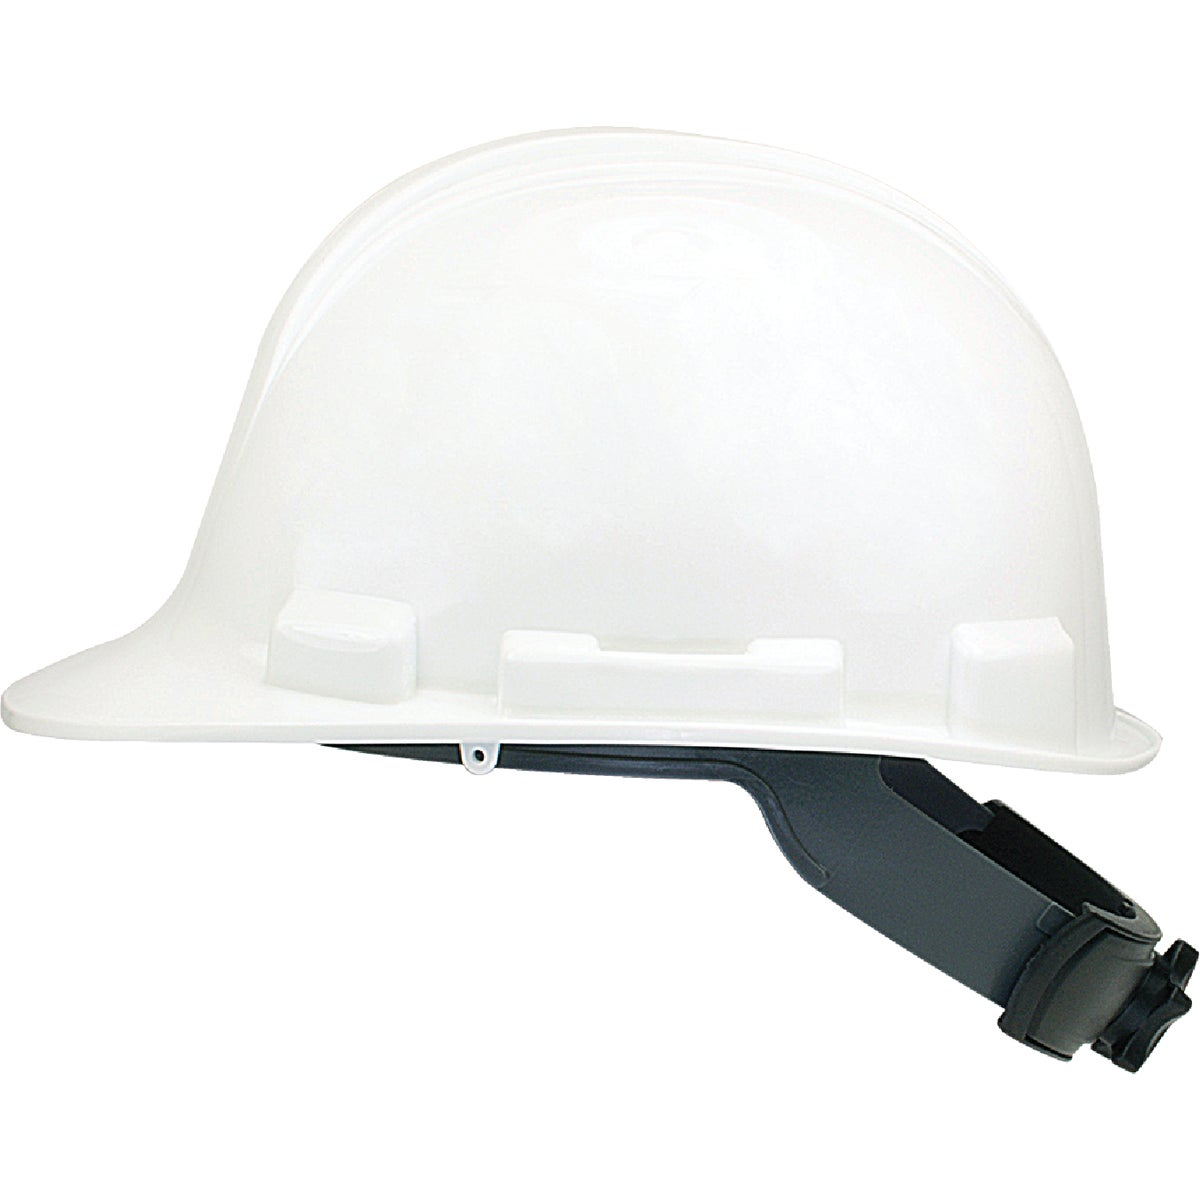 WHT RATCHETING HARD HAT - 818064 by Msa Safety